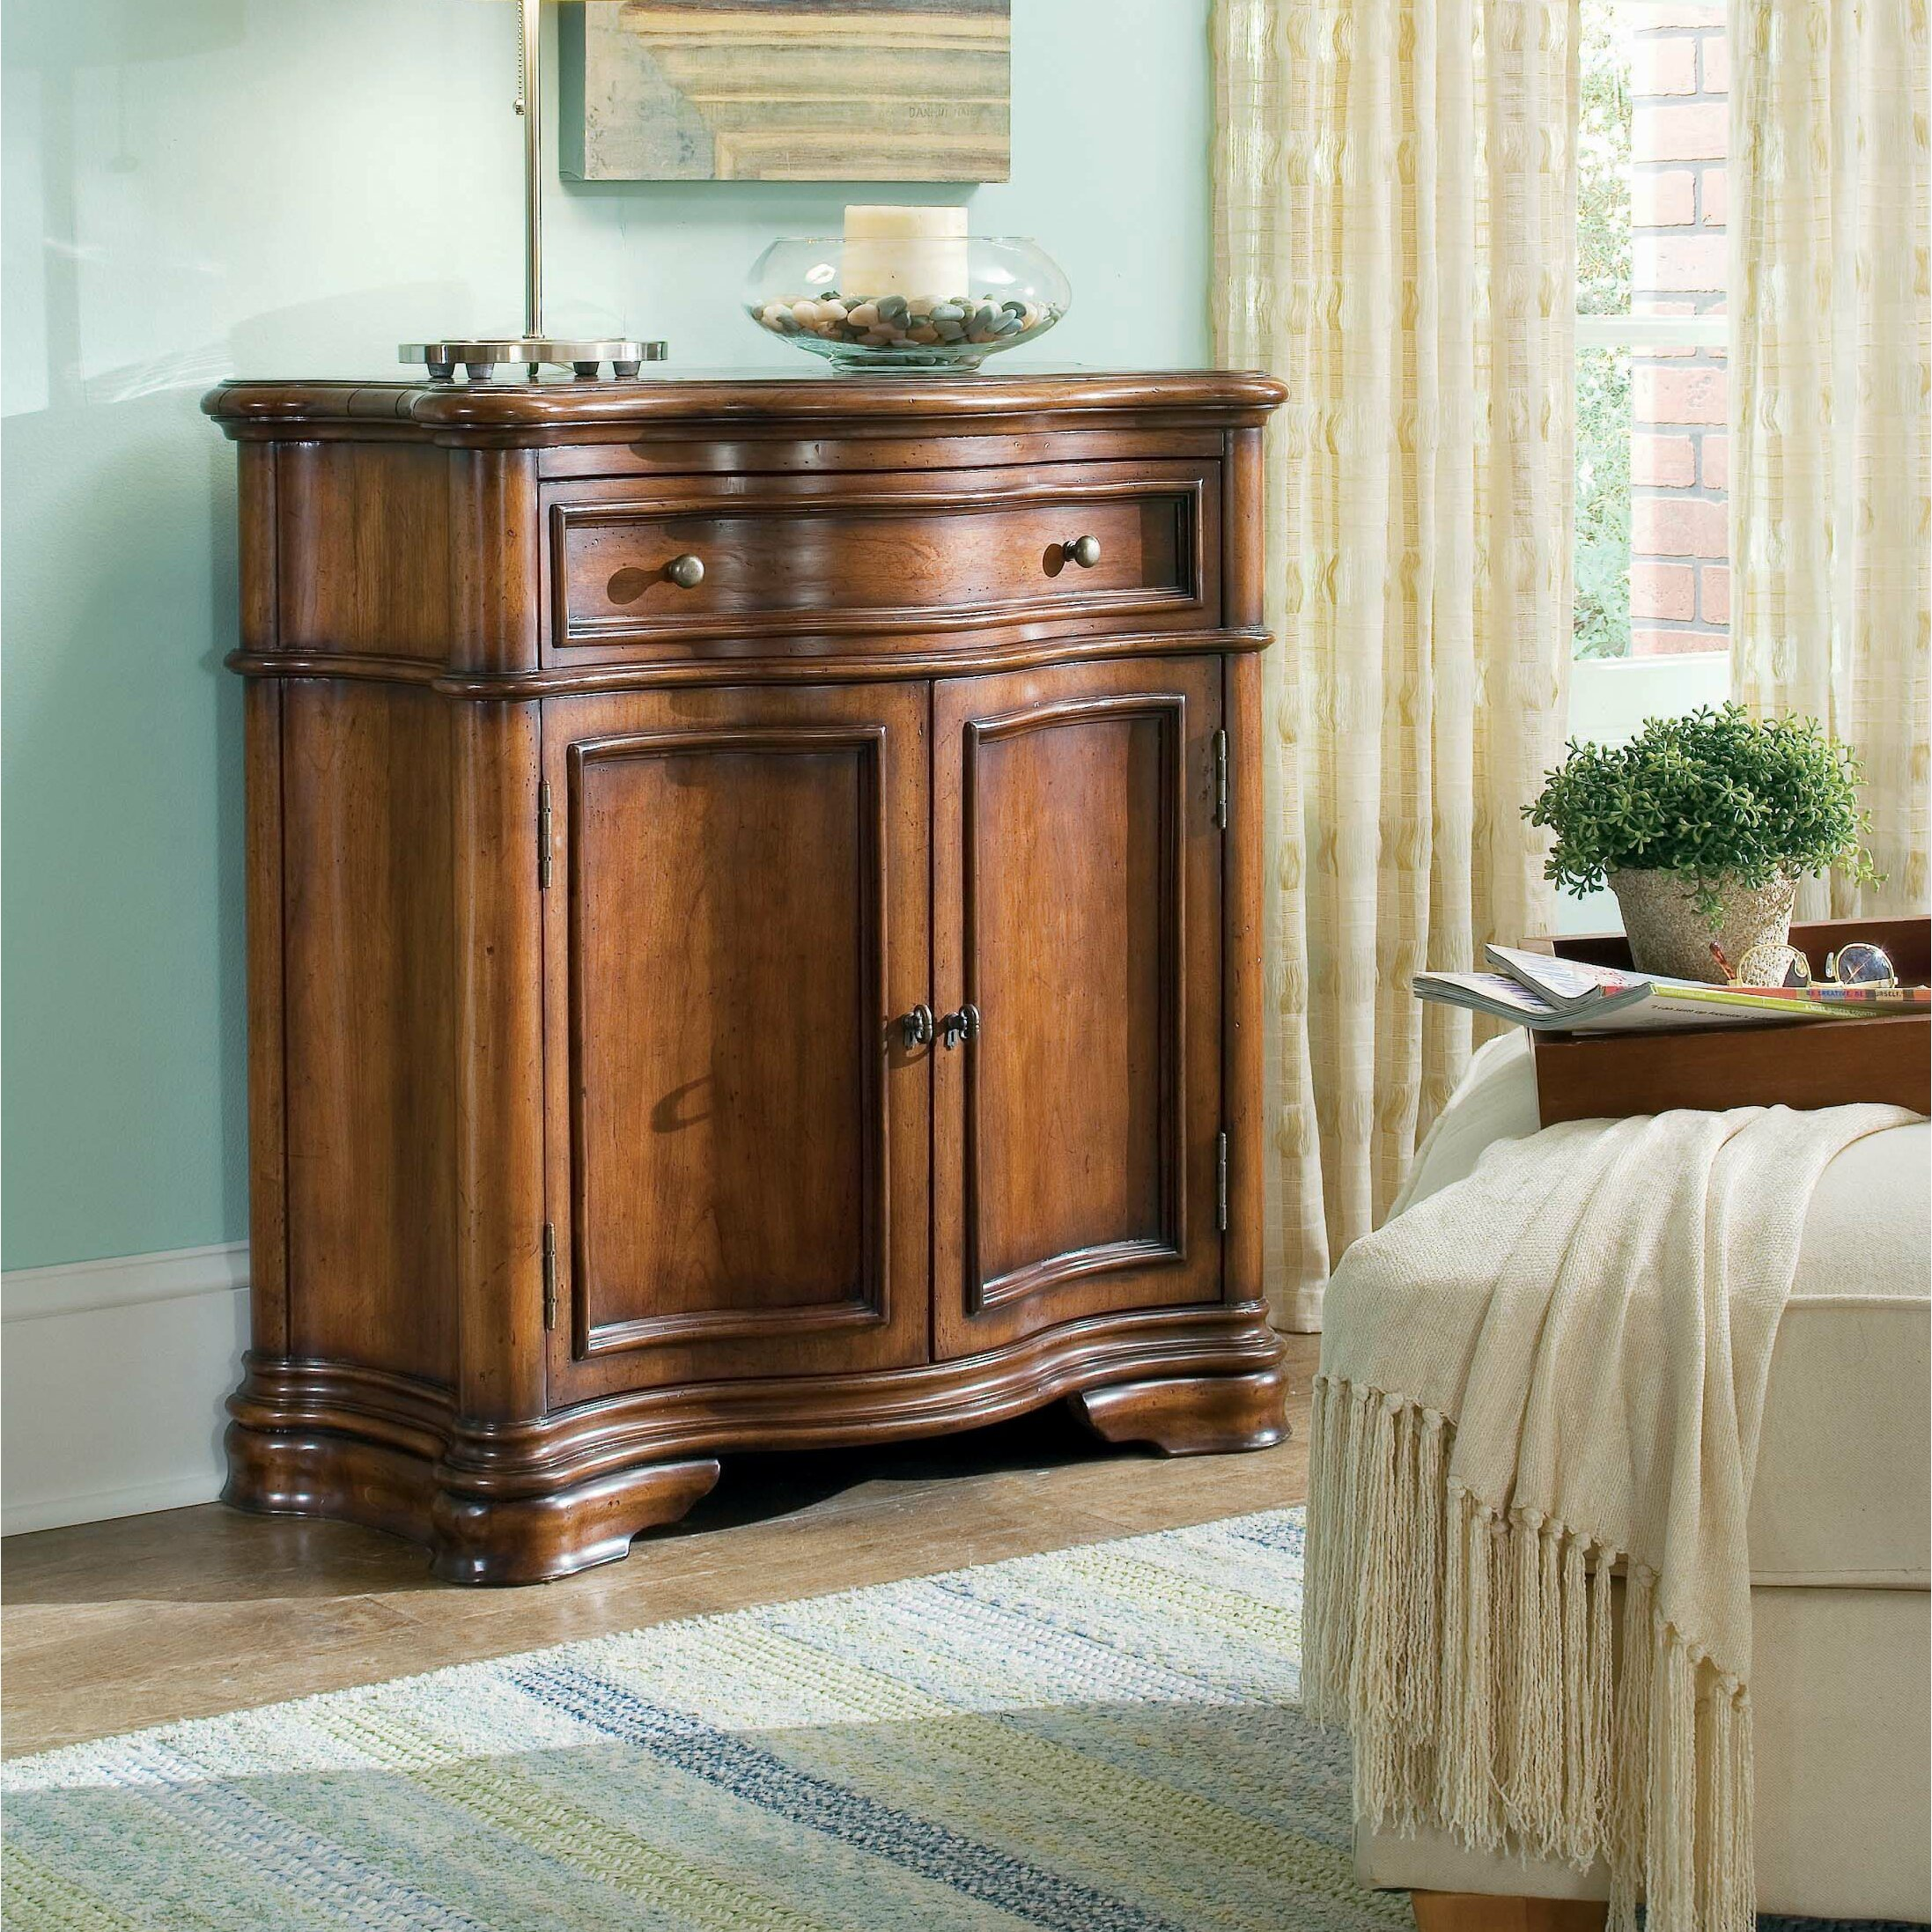 Hooker furniture waverly place shaped hall console cabinet for Place furniture